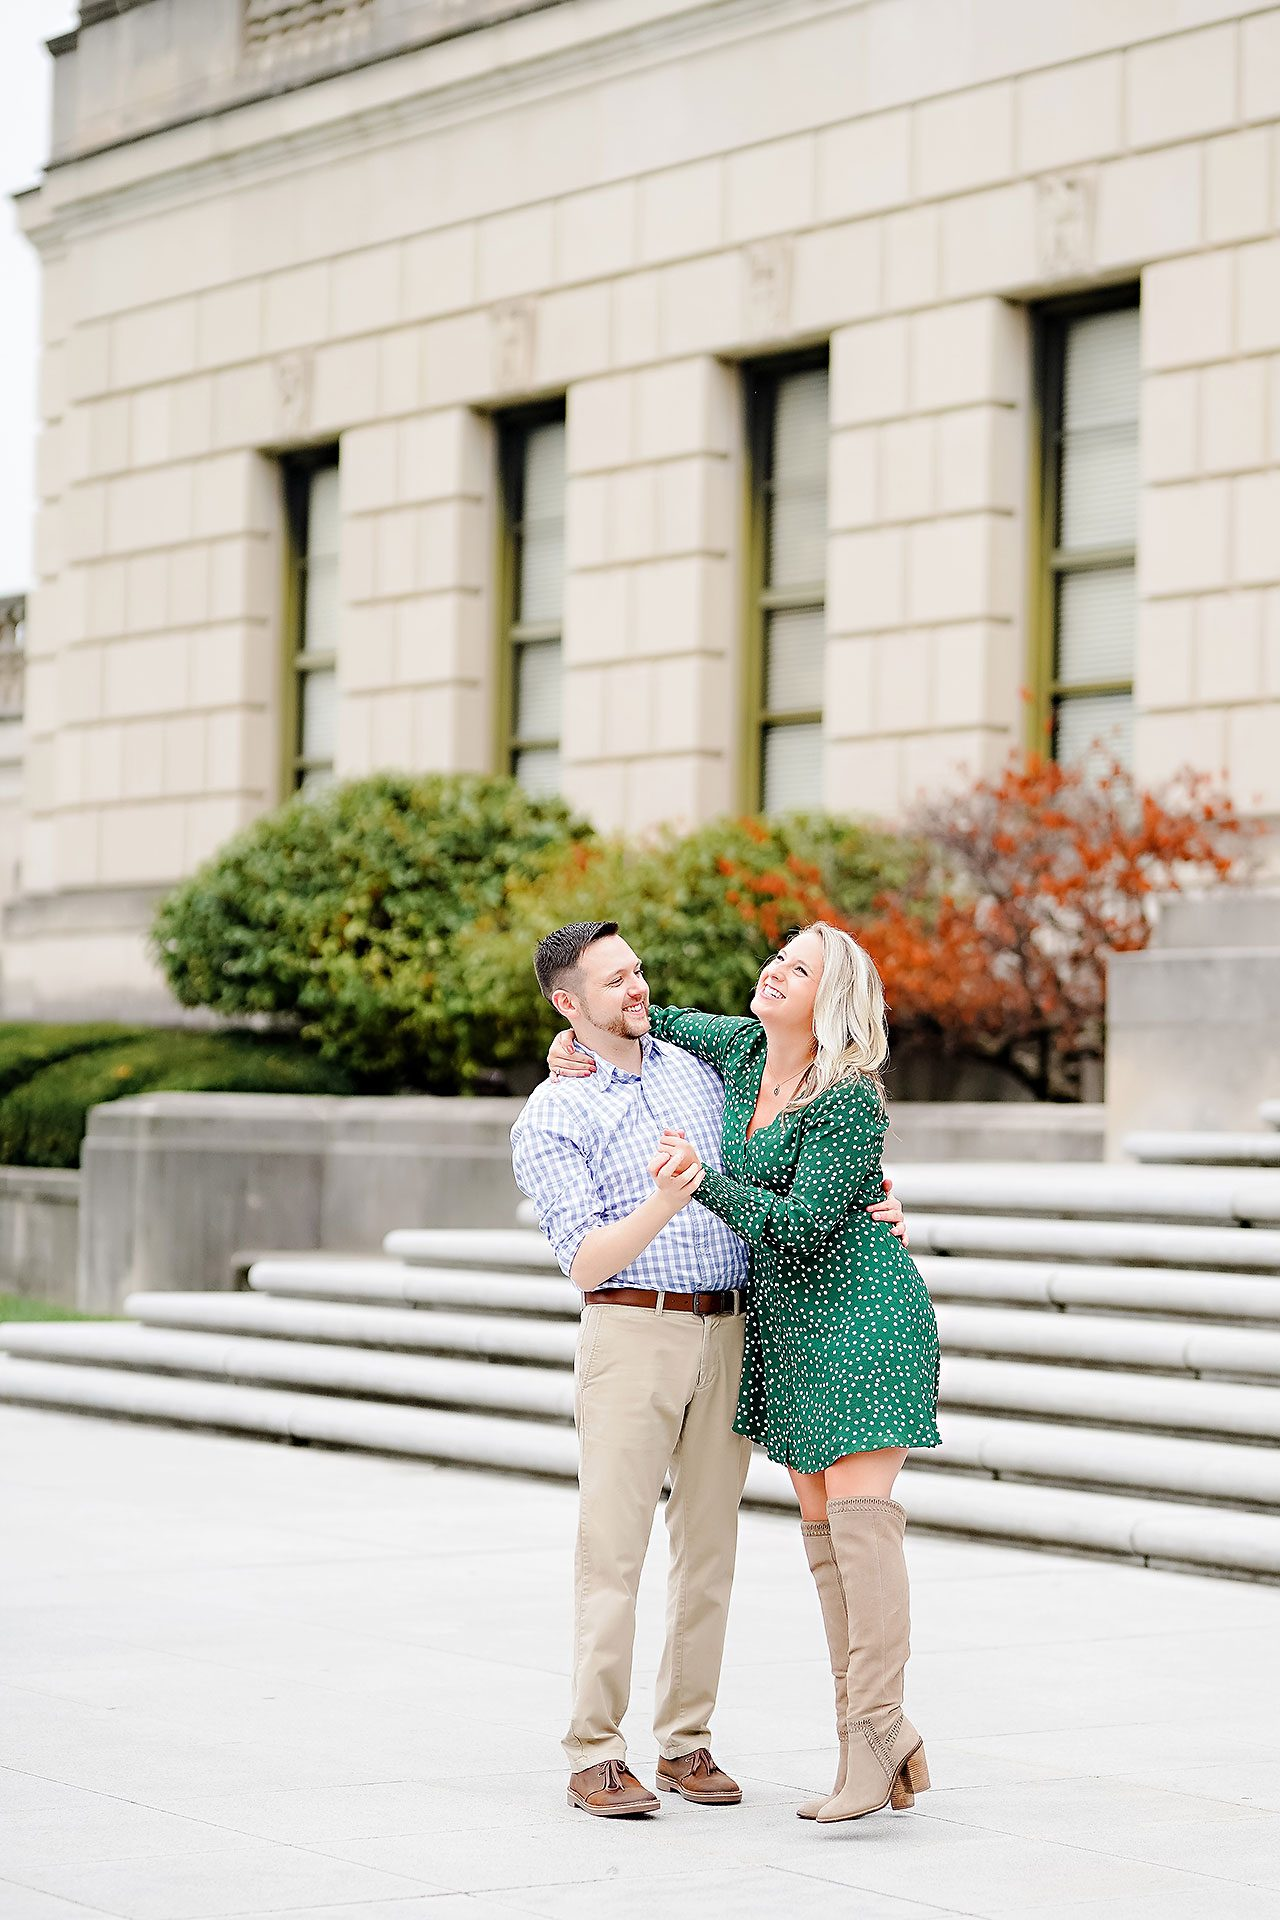 Kristen Jonny Indianapolis Downtown Engagement Session 067